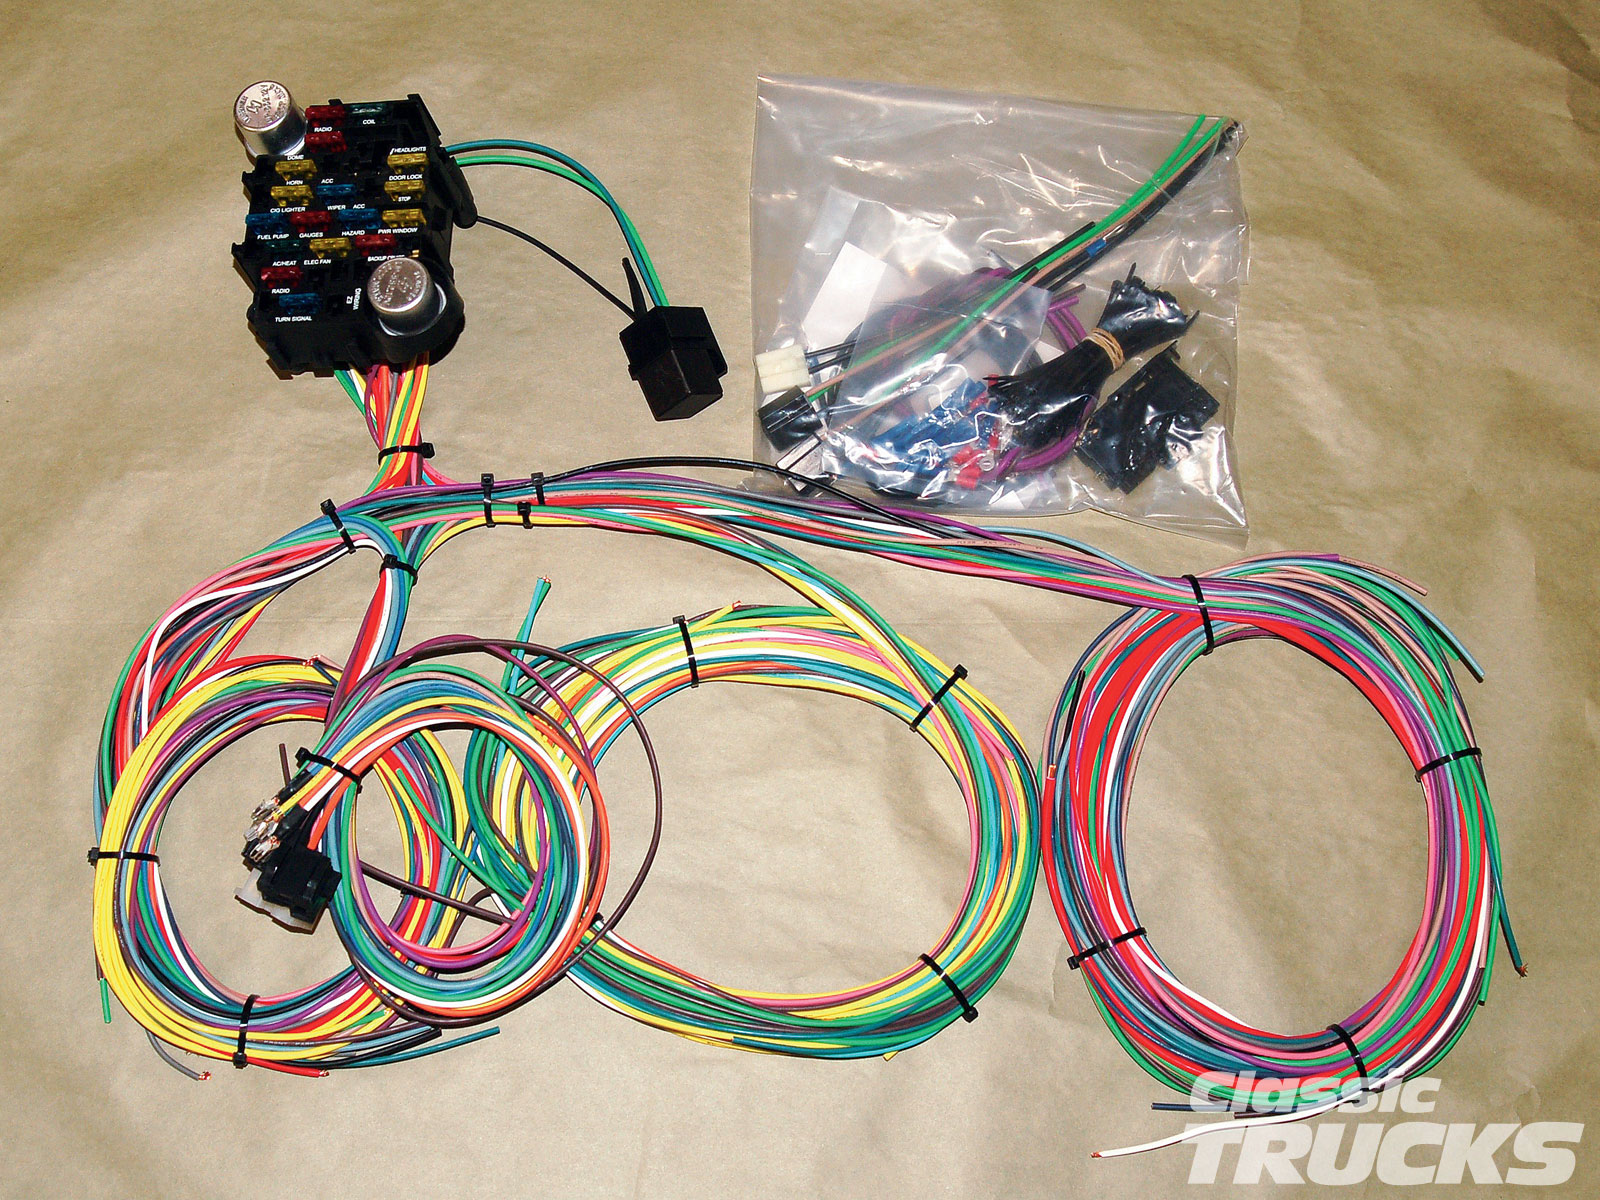 ezwire 12 circuit wiring harness electrical fuse wiring lights hot ez wire wiring diagram hot rod [ 1600 x 1200 Pixel ]